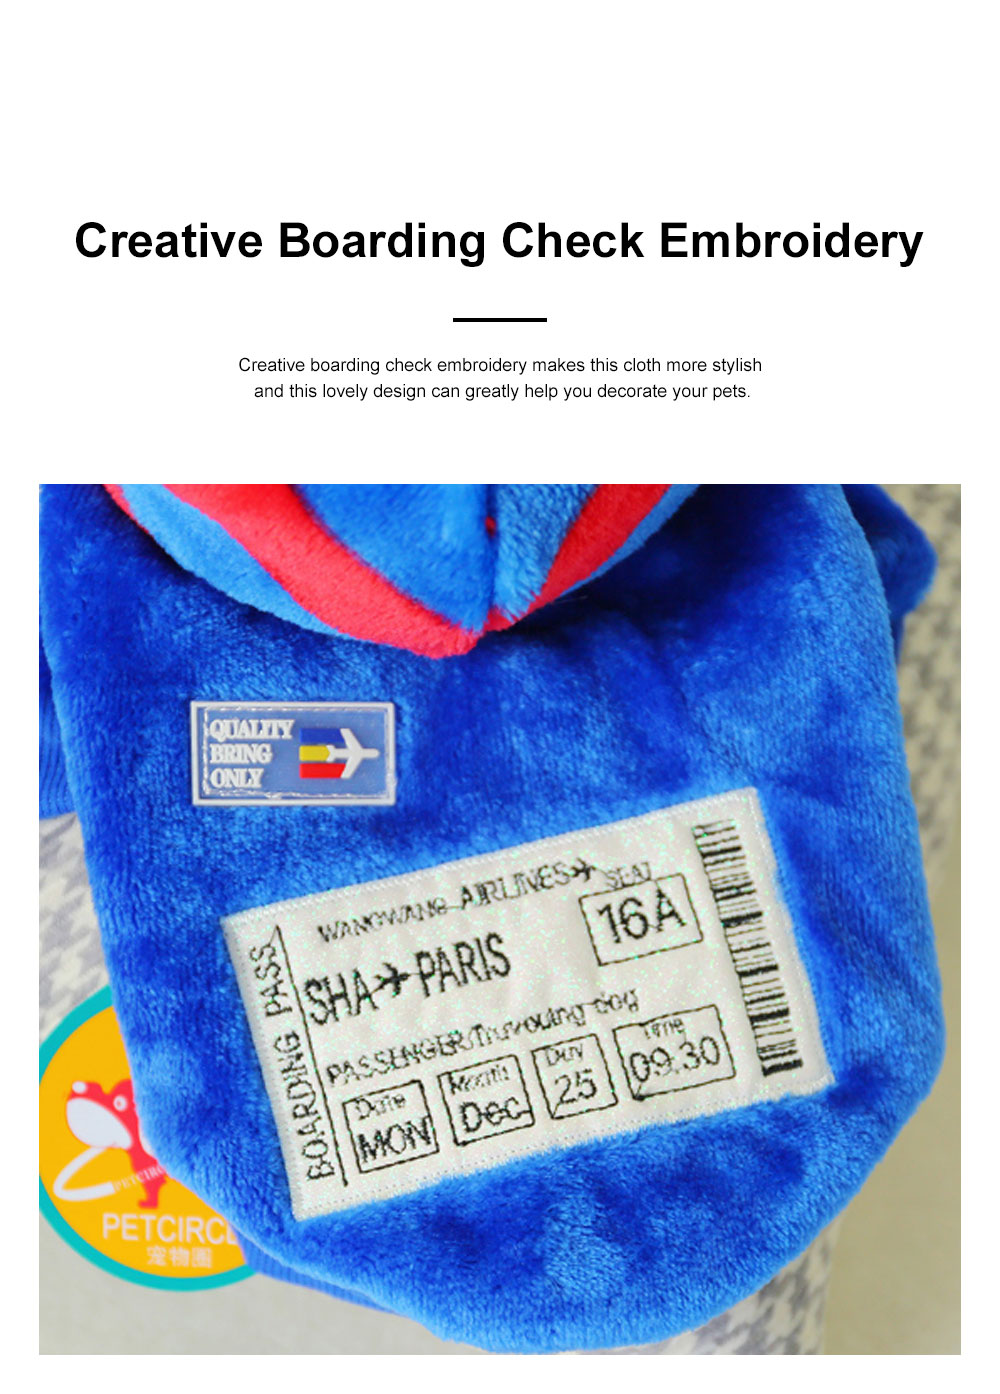 Creative Boarding Check Warm Pet Hoodie Embroidery Decorative Winter Autumn Puppy Little Dog Cat Pet Cloth Hooded Fleece 3